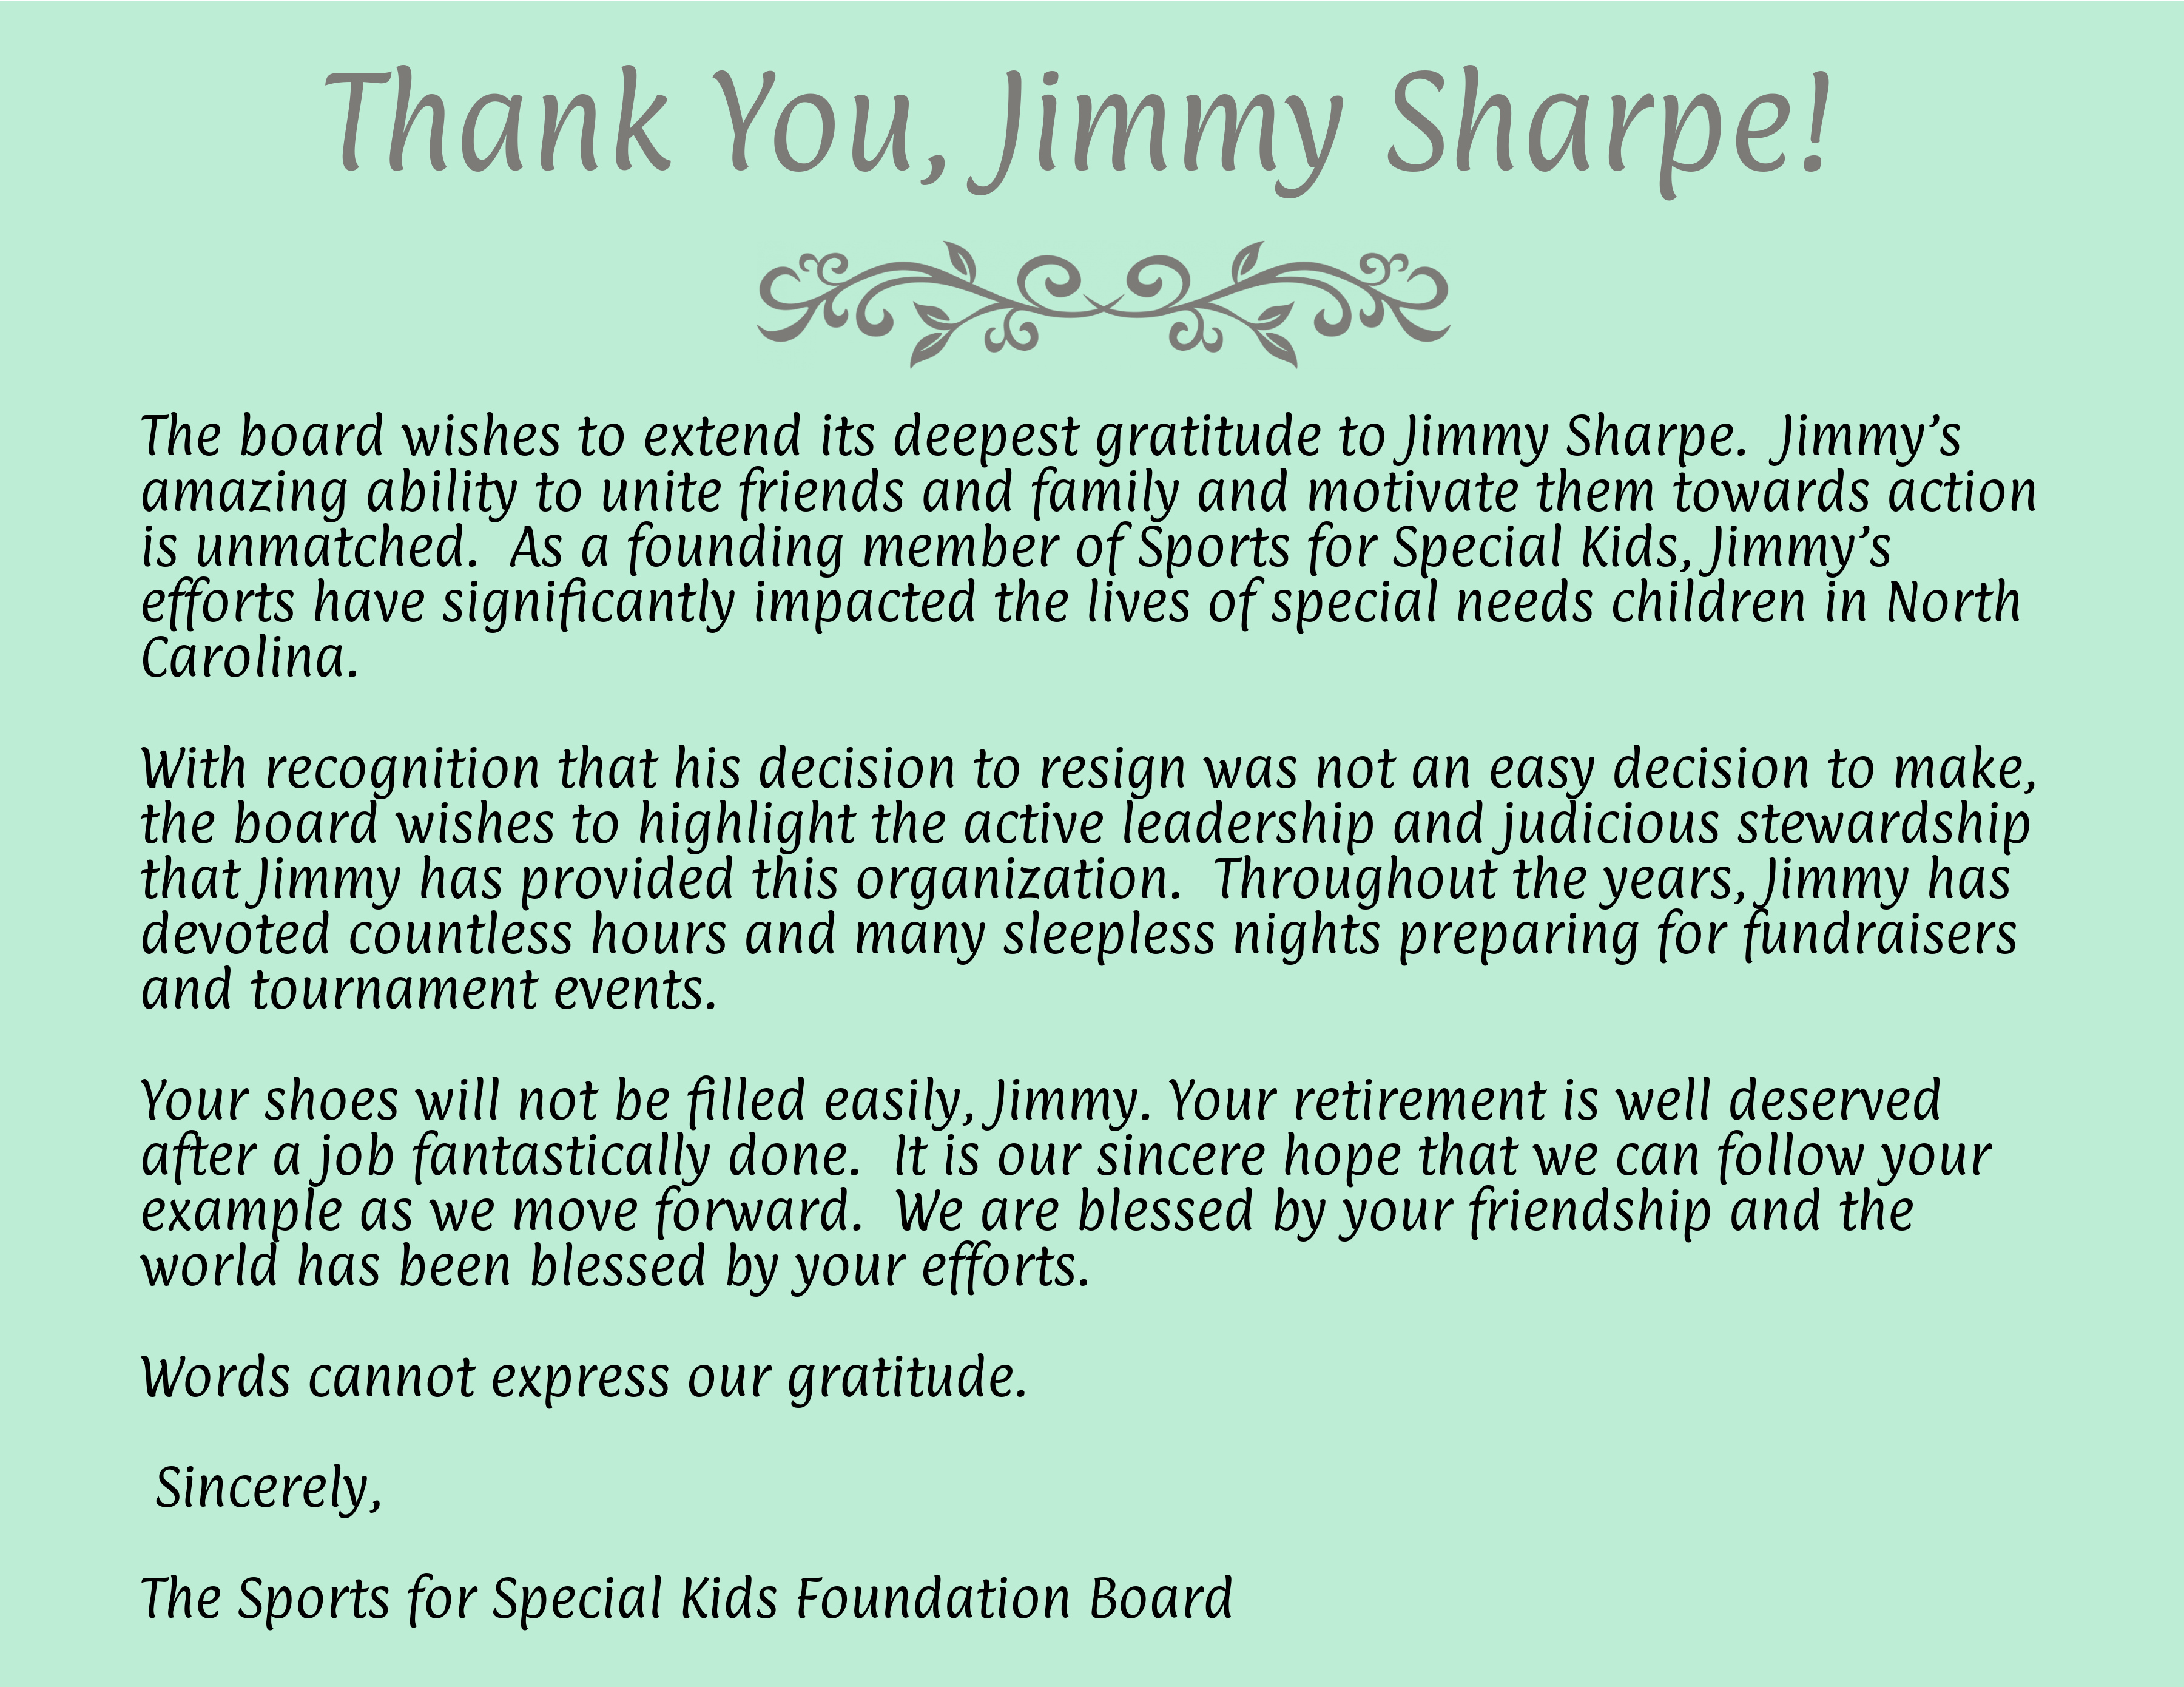 Thank You Note to Jimmy Sharpe